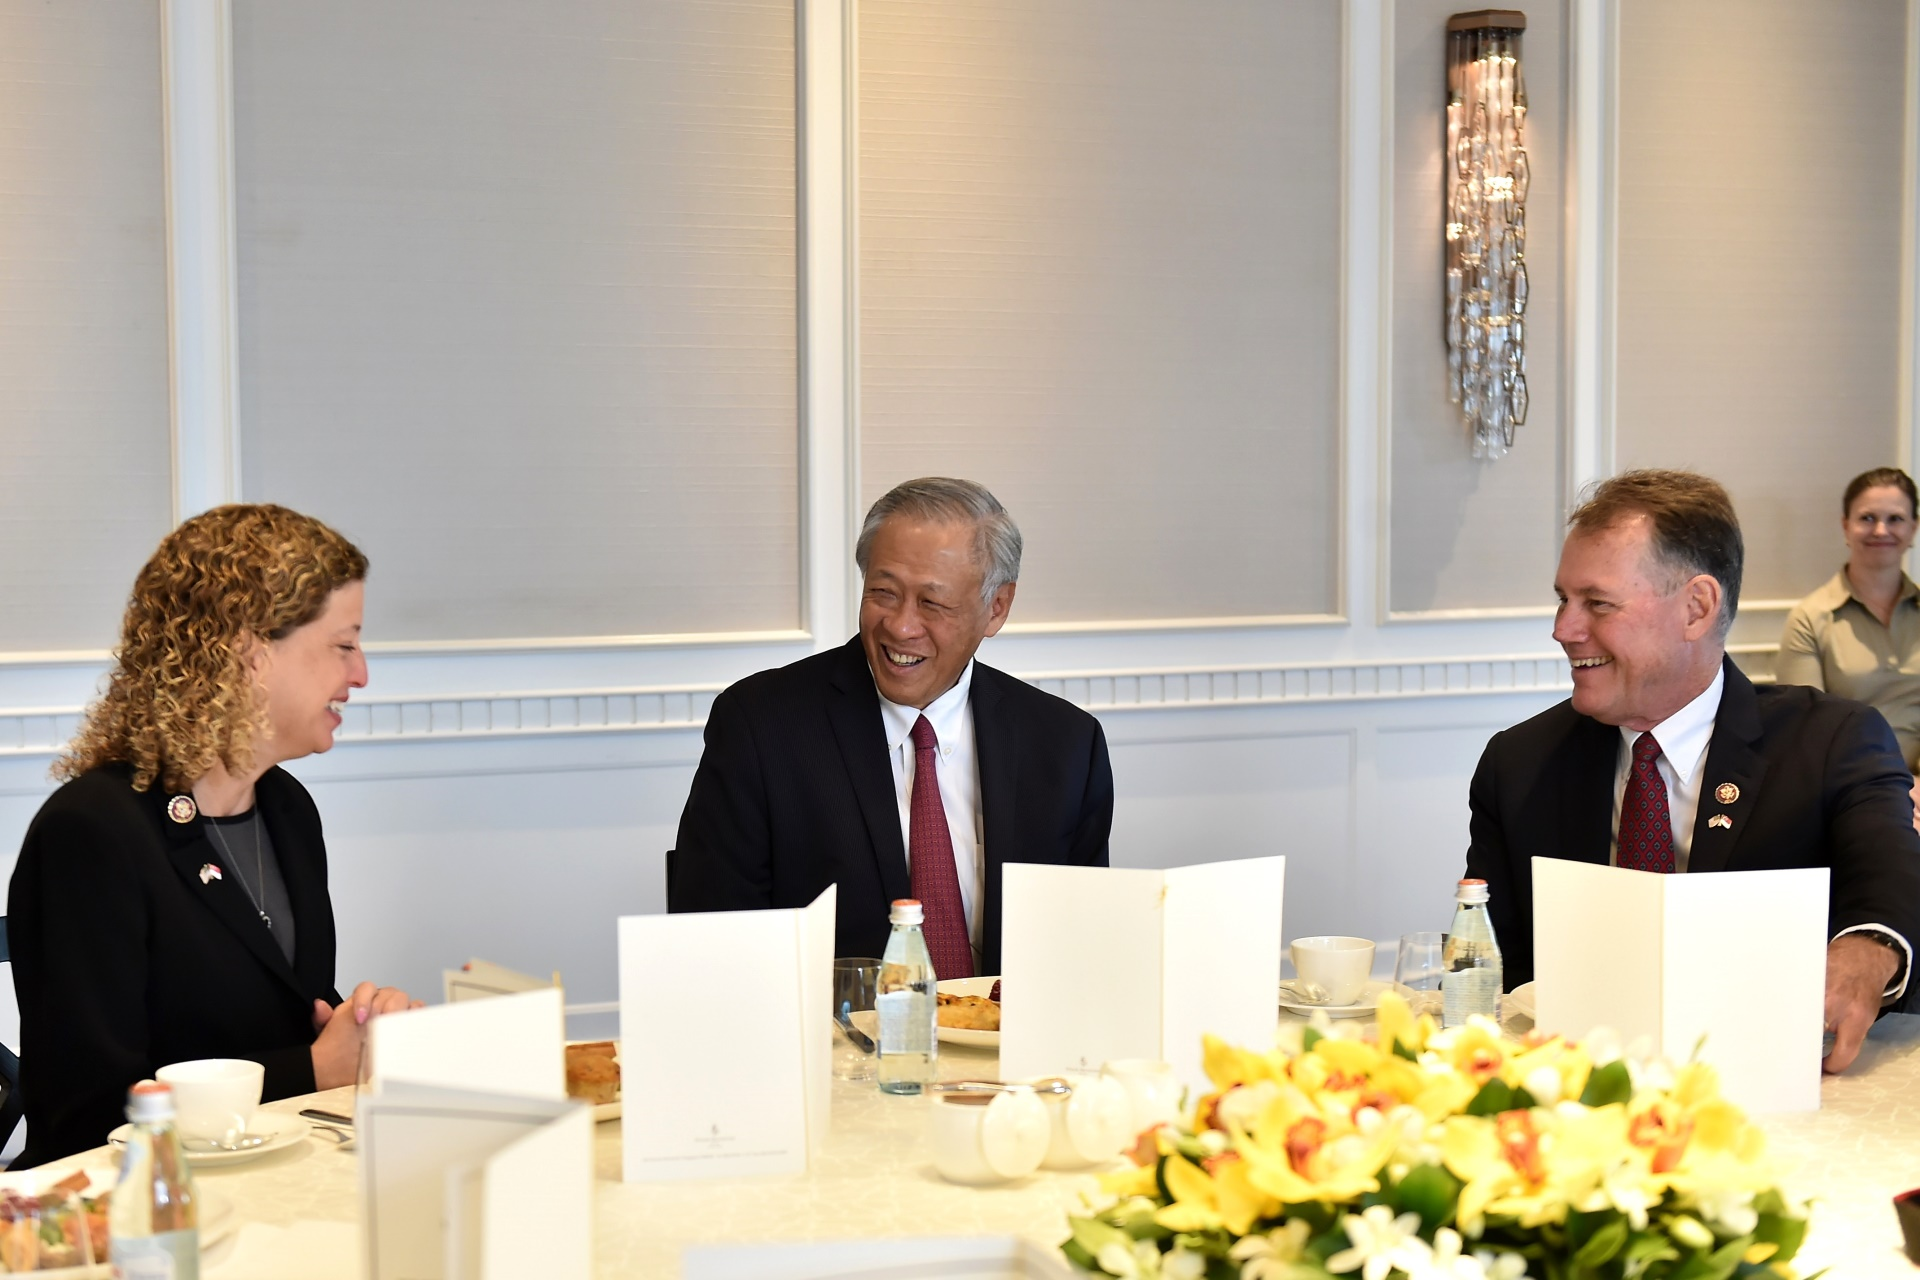 Minister for Defence Dr Ng Eng Hen (middle) hosting a tea session for the United States (US) congressional delegation, led by Chairwoman of the Sub-Committee on Military Construction and Veteran Affairs Debbie Wasserman Schultz (left) this morning.